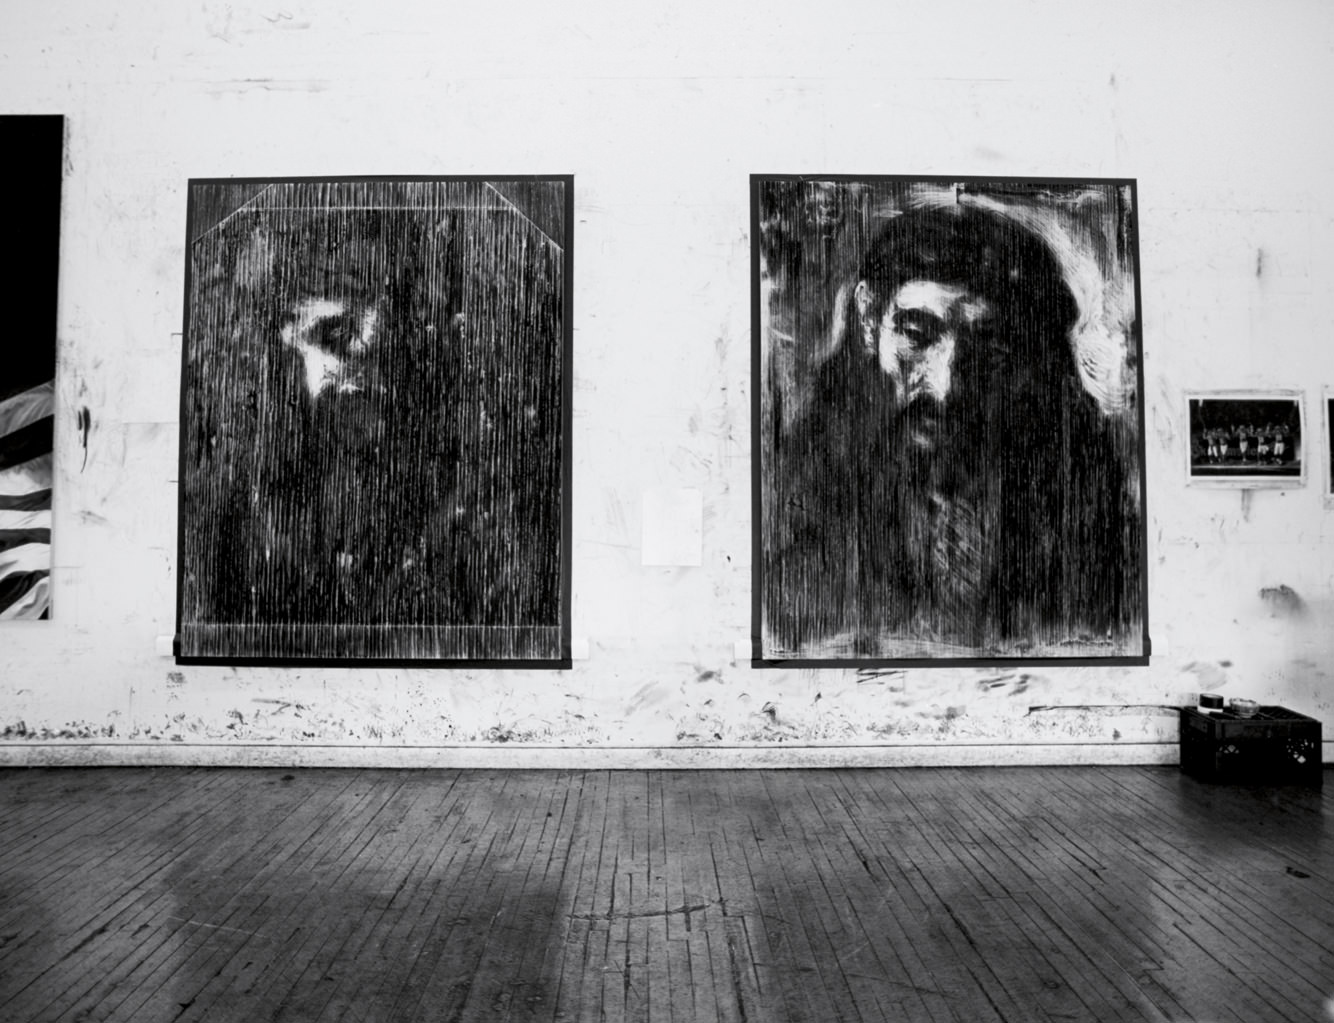 View of the studio. These Robert Longo works were made after representations of Jesus Chris drawn by Rembrandt.